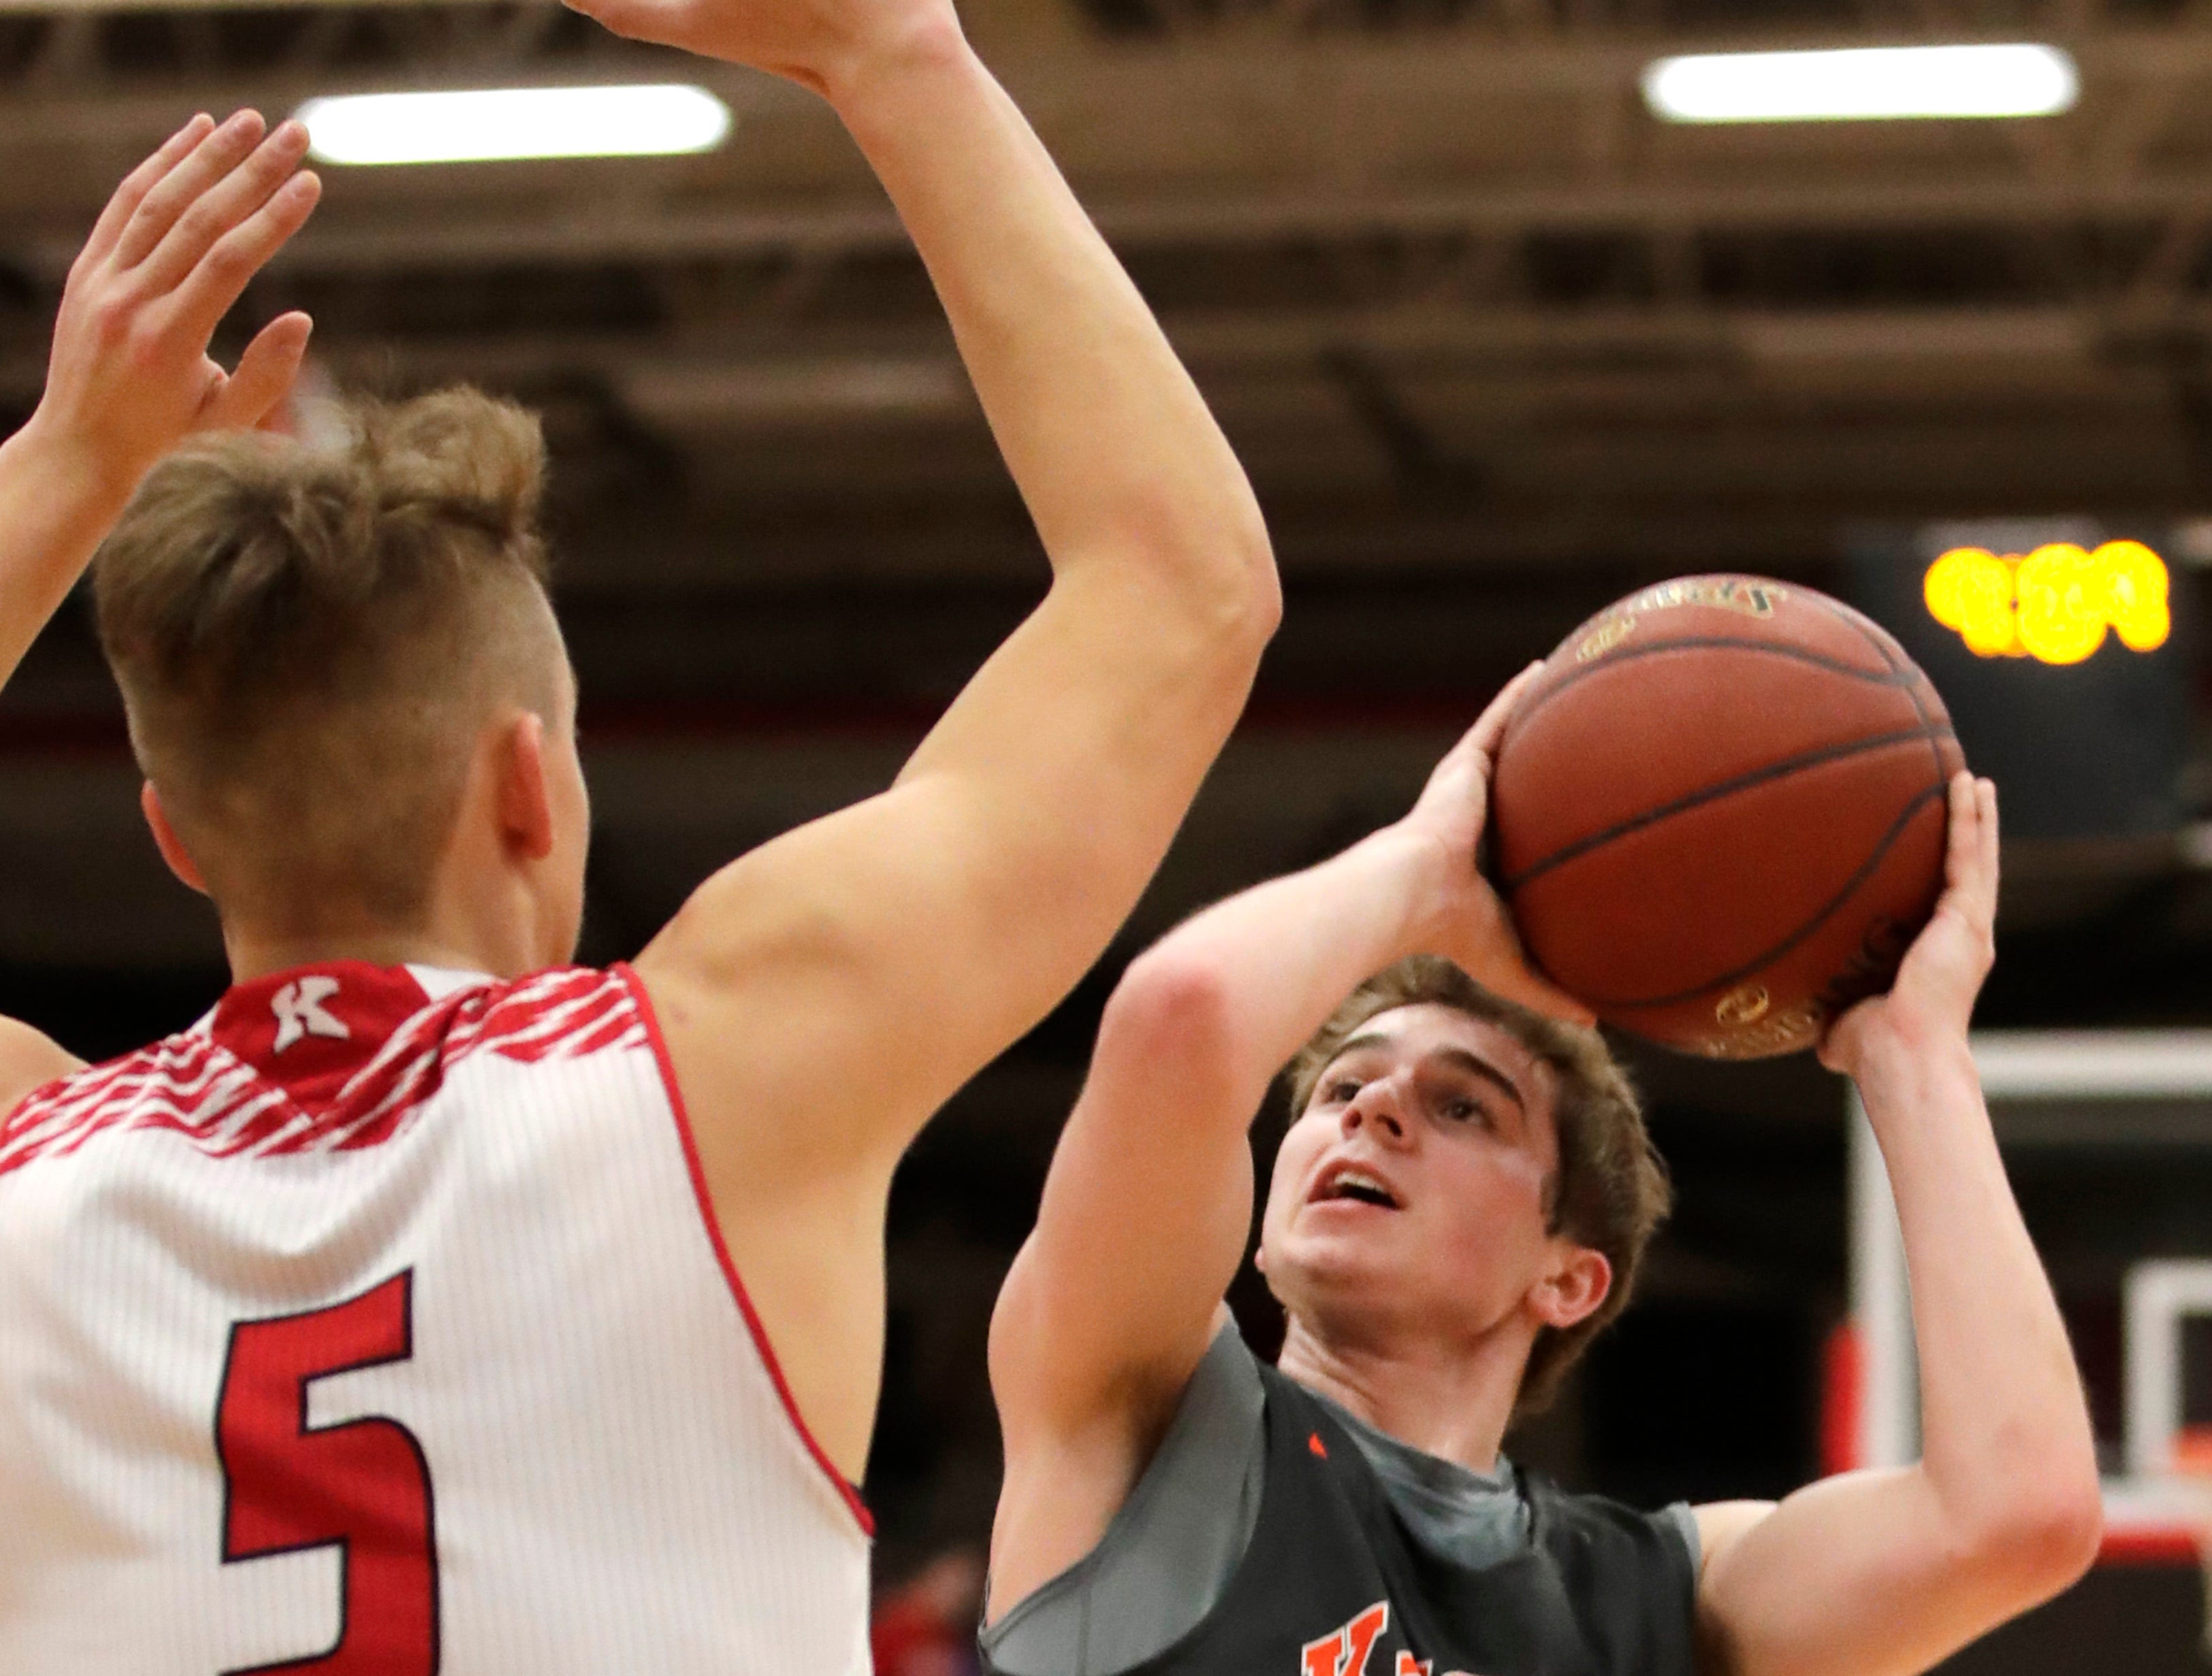 Kaukauna High School's Keaton Ferris looks for a shot against Kimberly High School Friday, Dec. 7, 2018, in Kimberly, Wis.